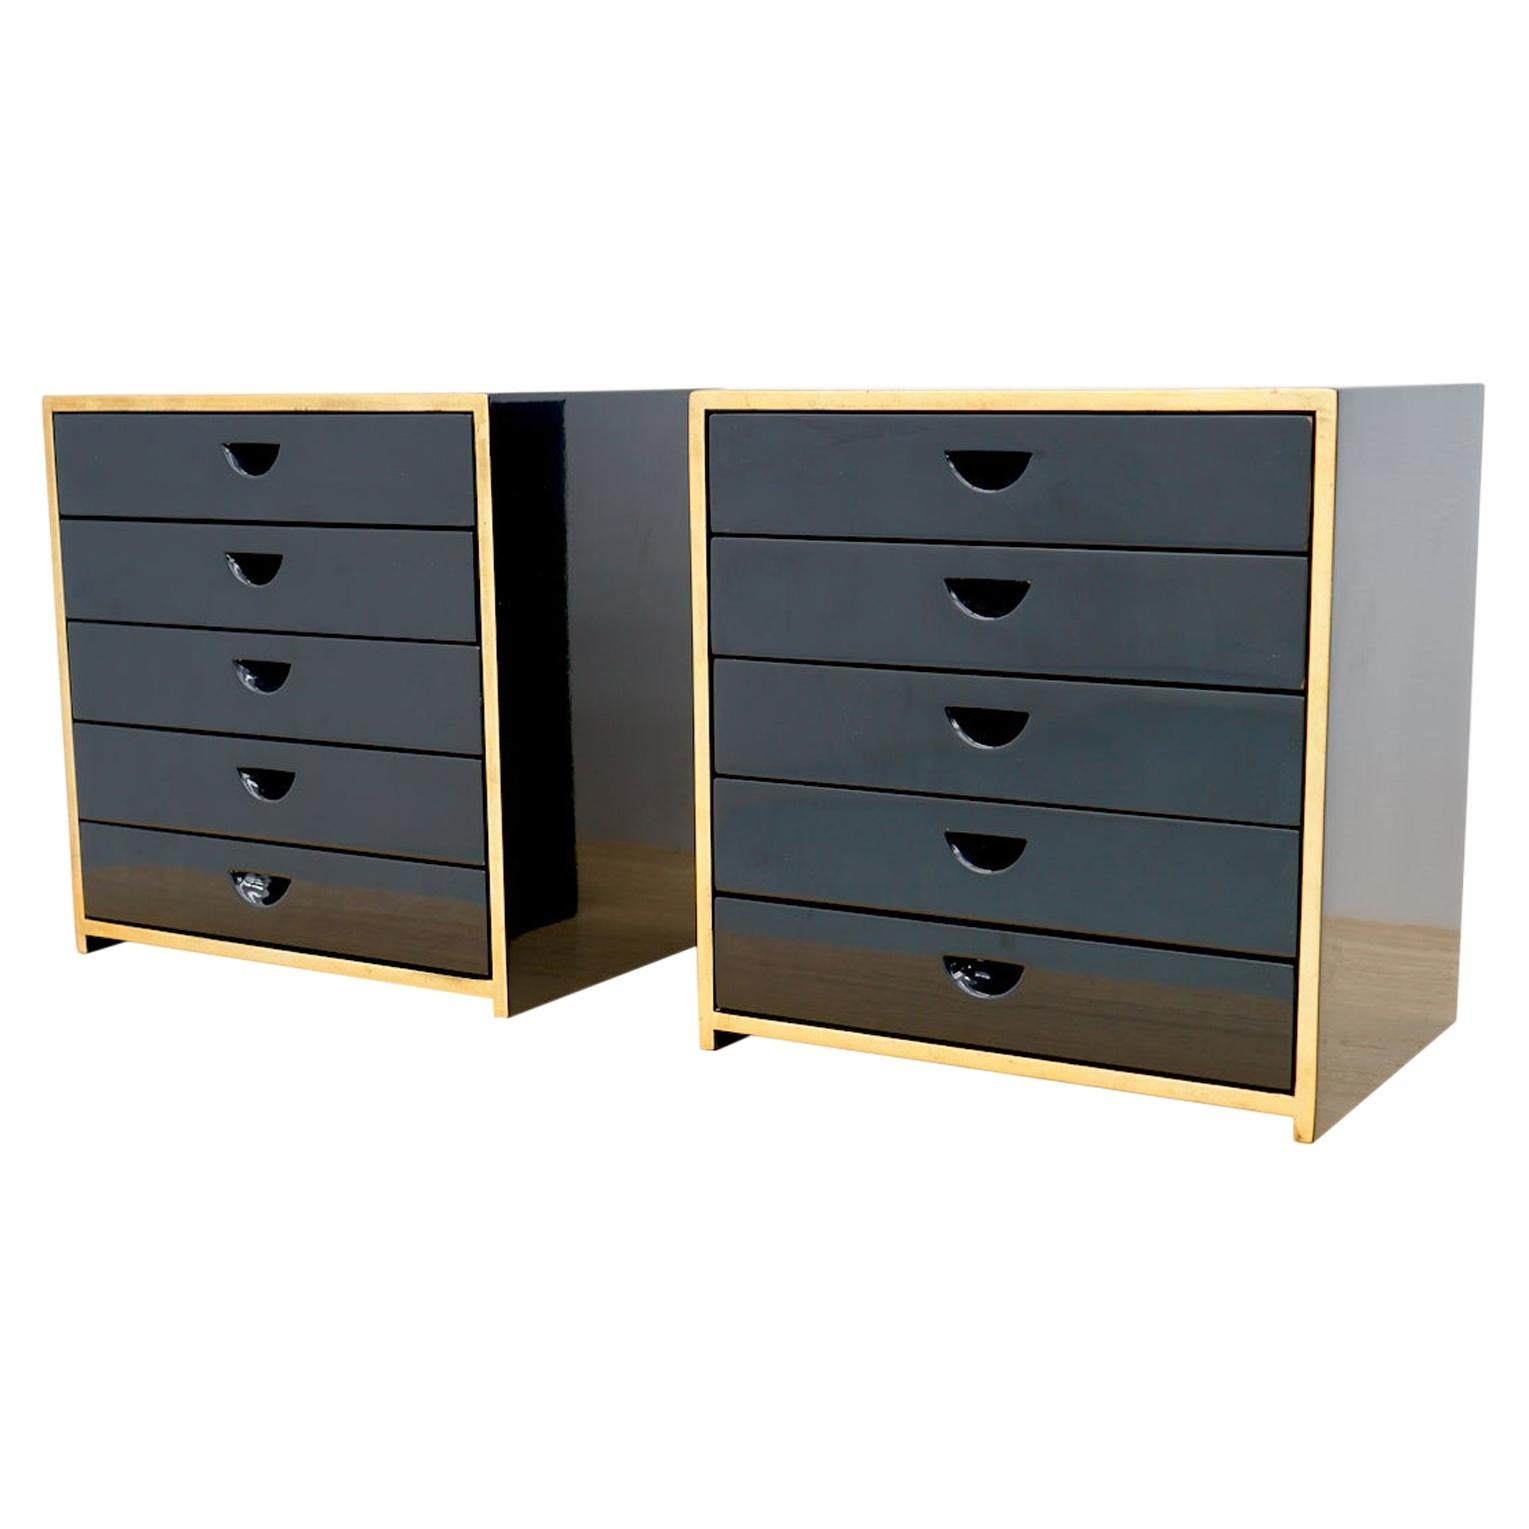 Pair of Jewelry Cabinets in Black Lacquer Attr. to Jean-Claude Mahey